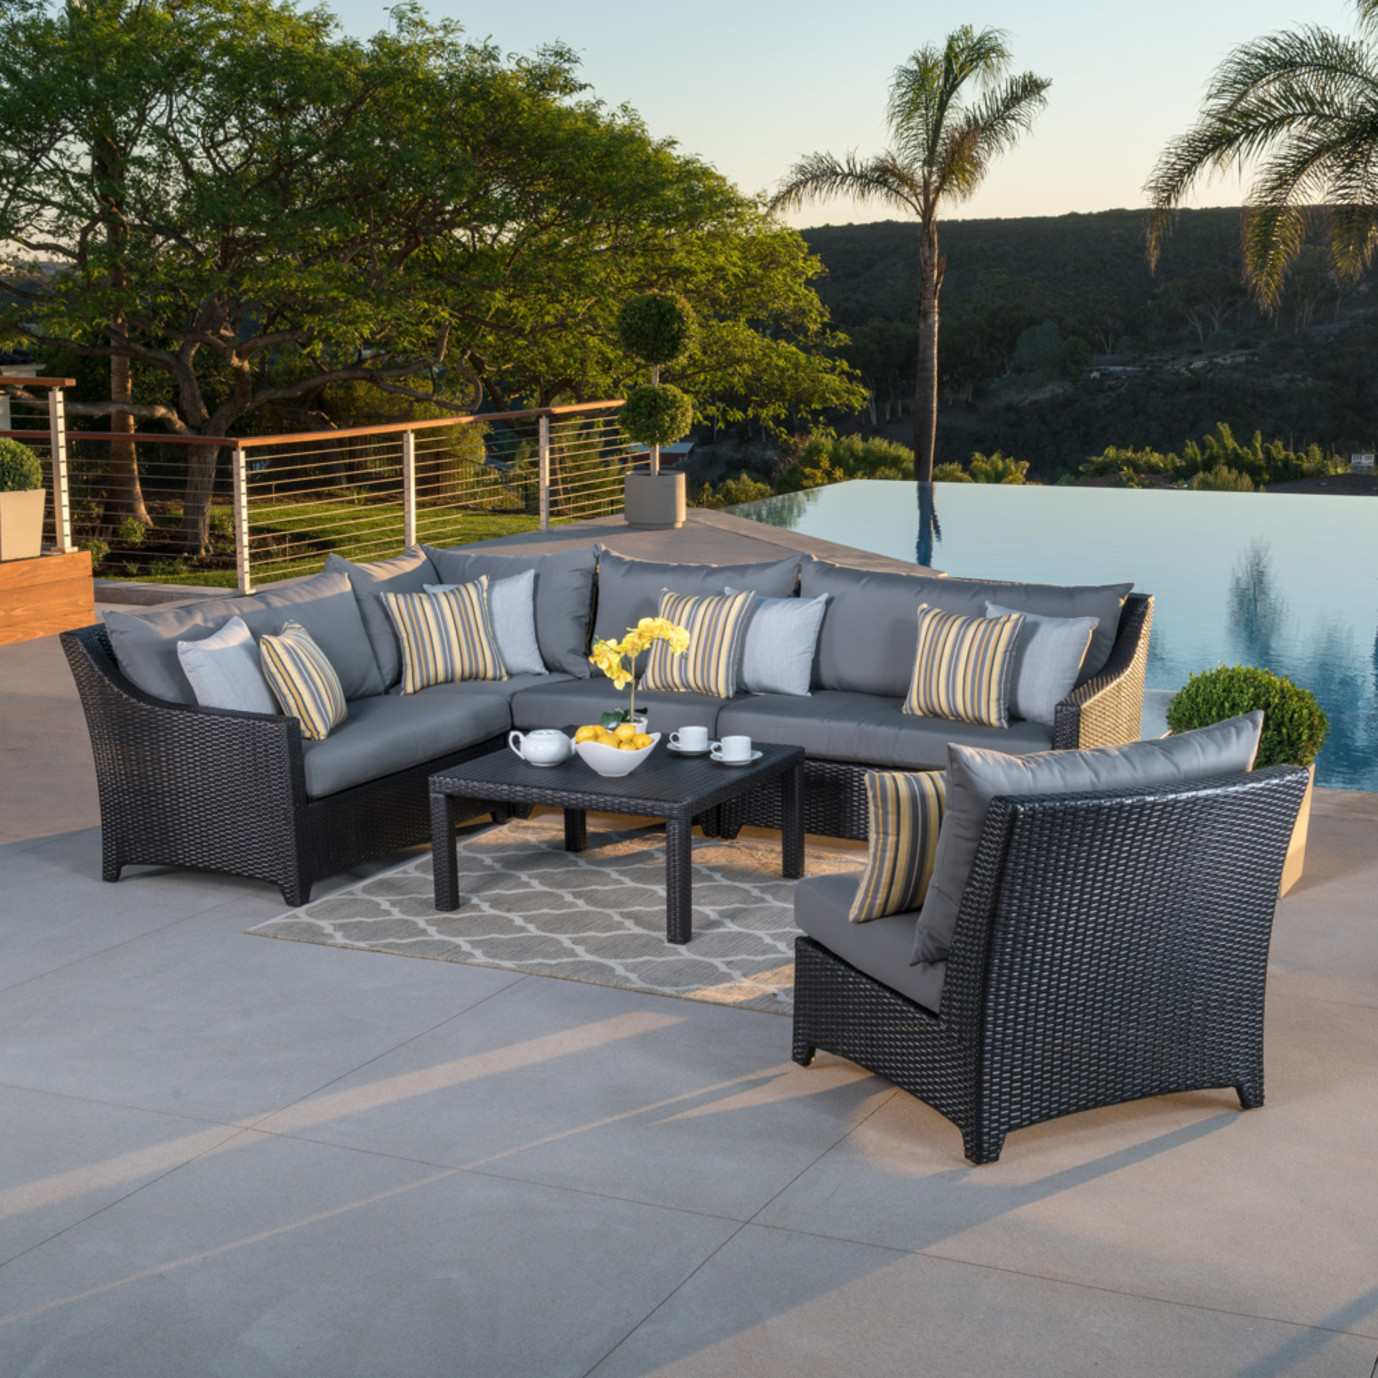 Deco™ 6pc Sectional and Table - Charcoal Gray